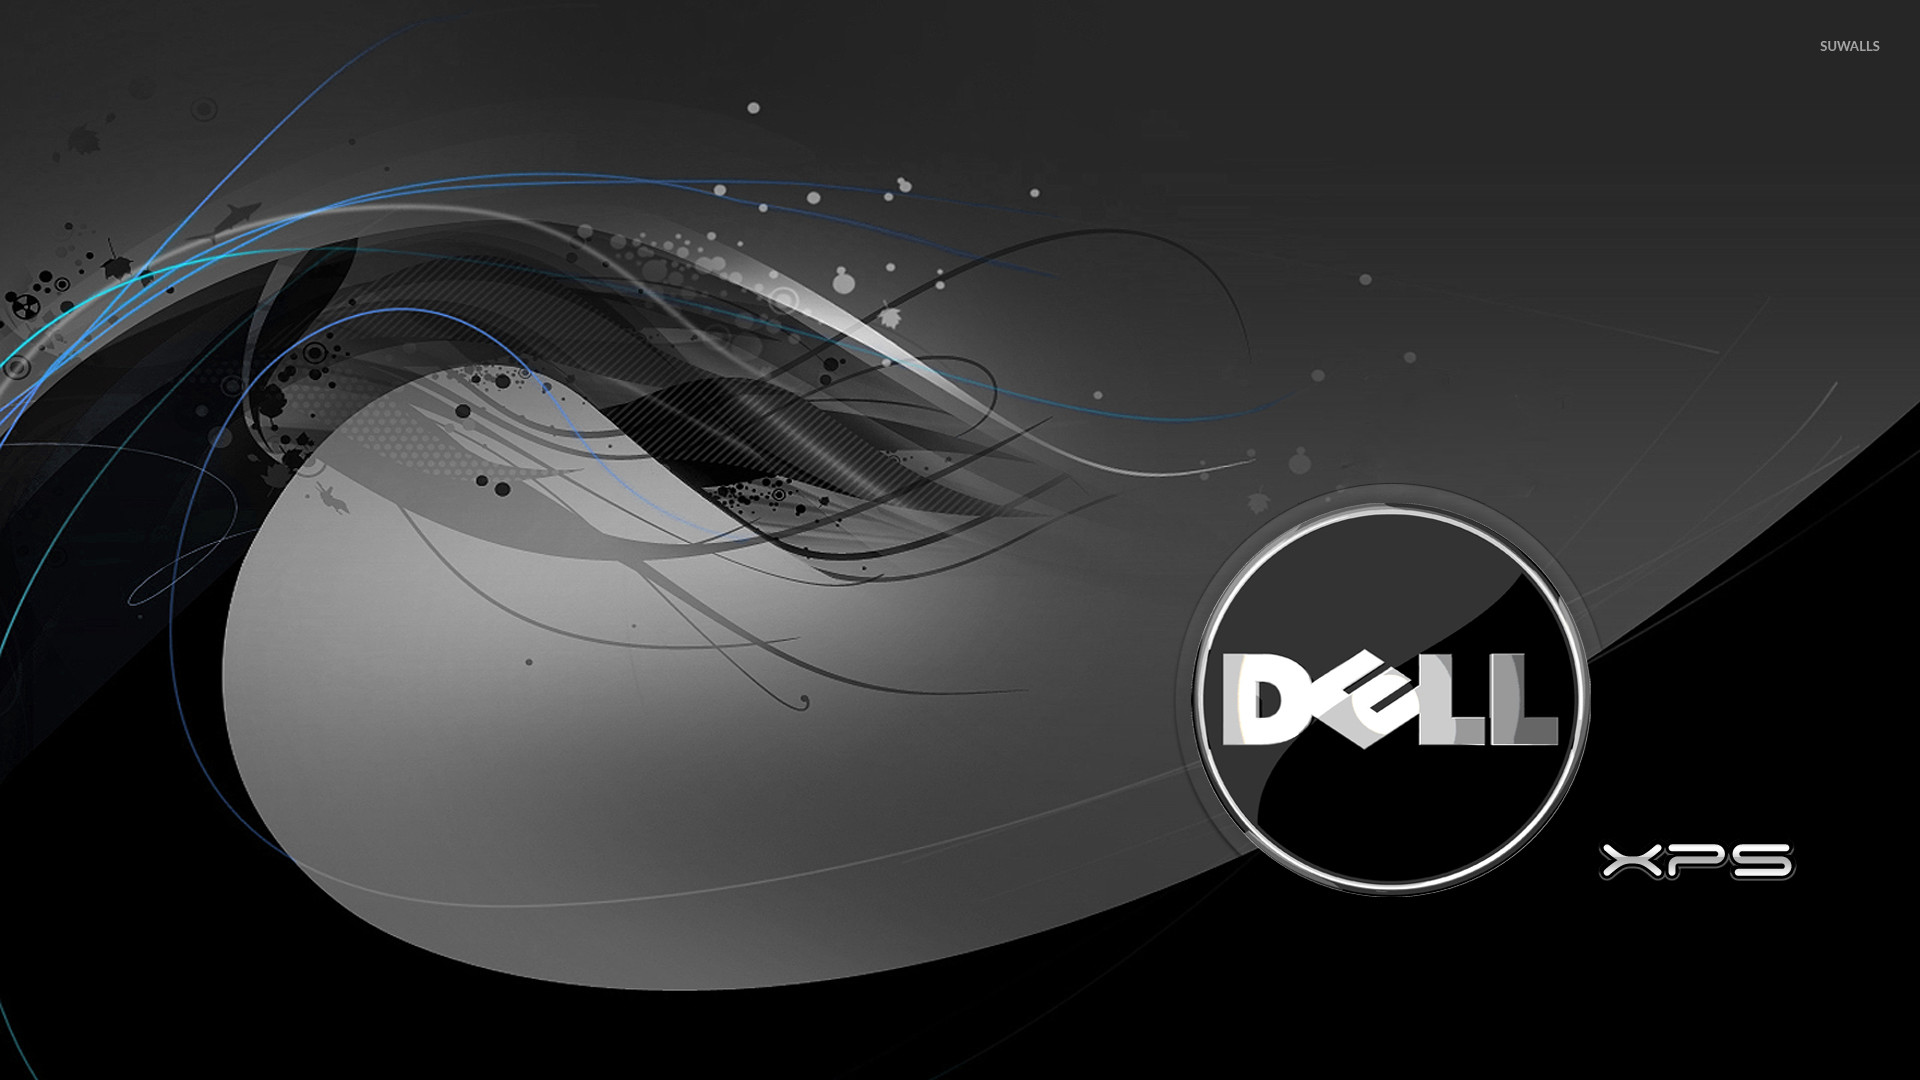 1920x1080 Dell XPS wallpaper